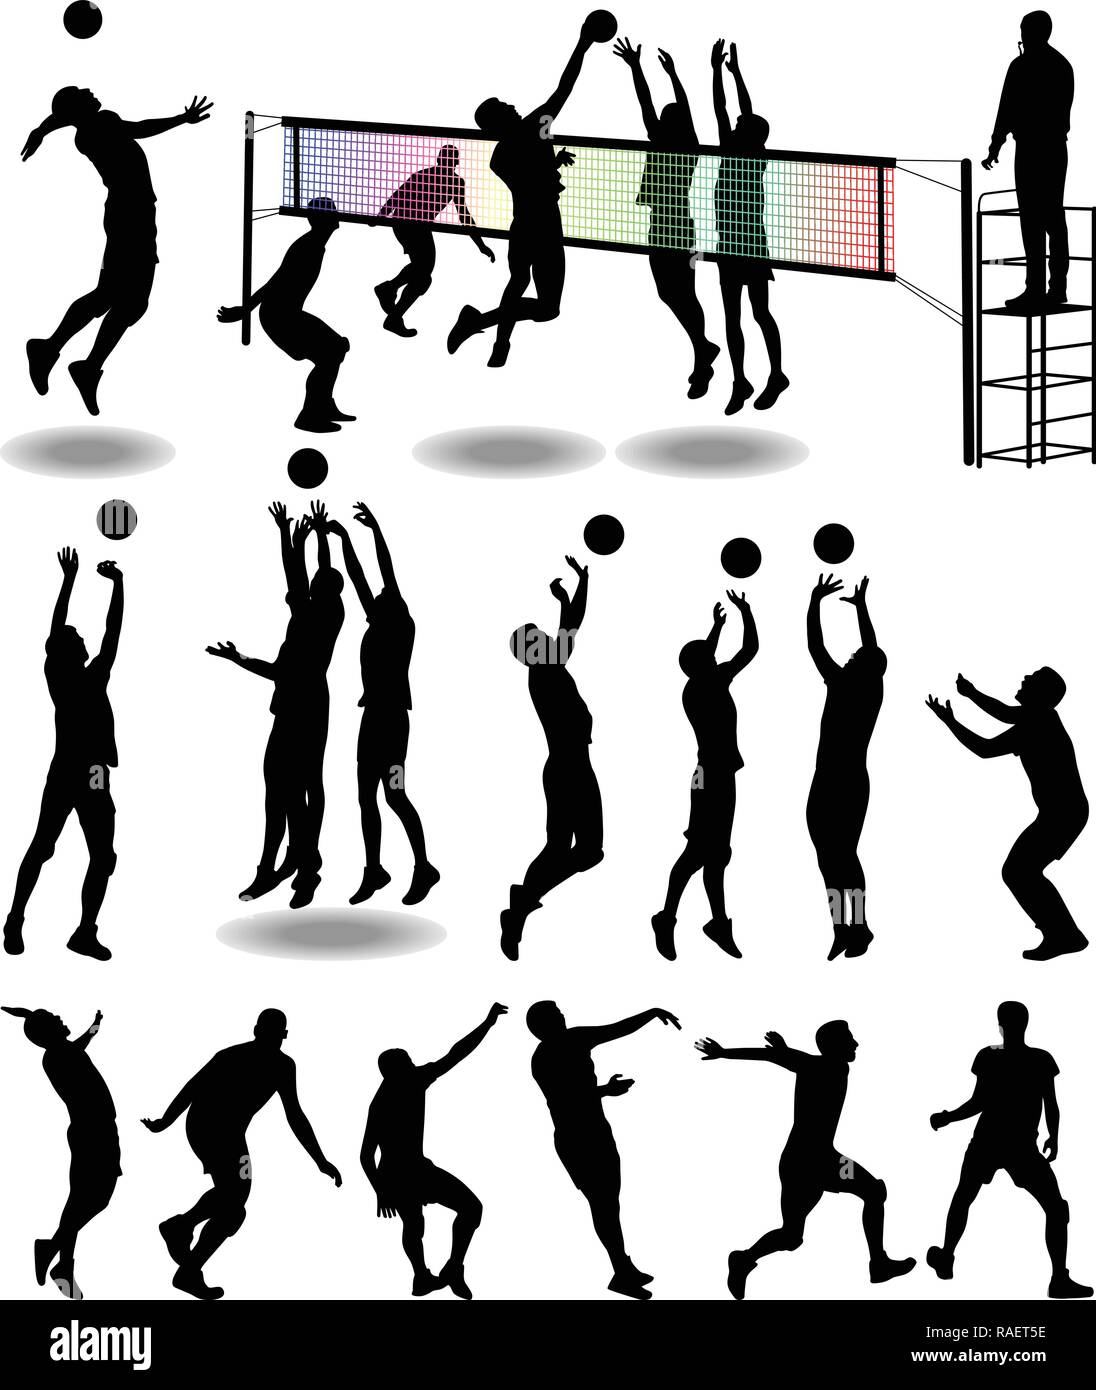 Clipart of volleyball player black silhouette in various